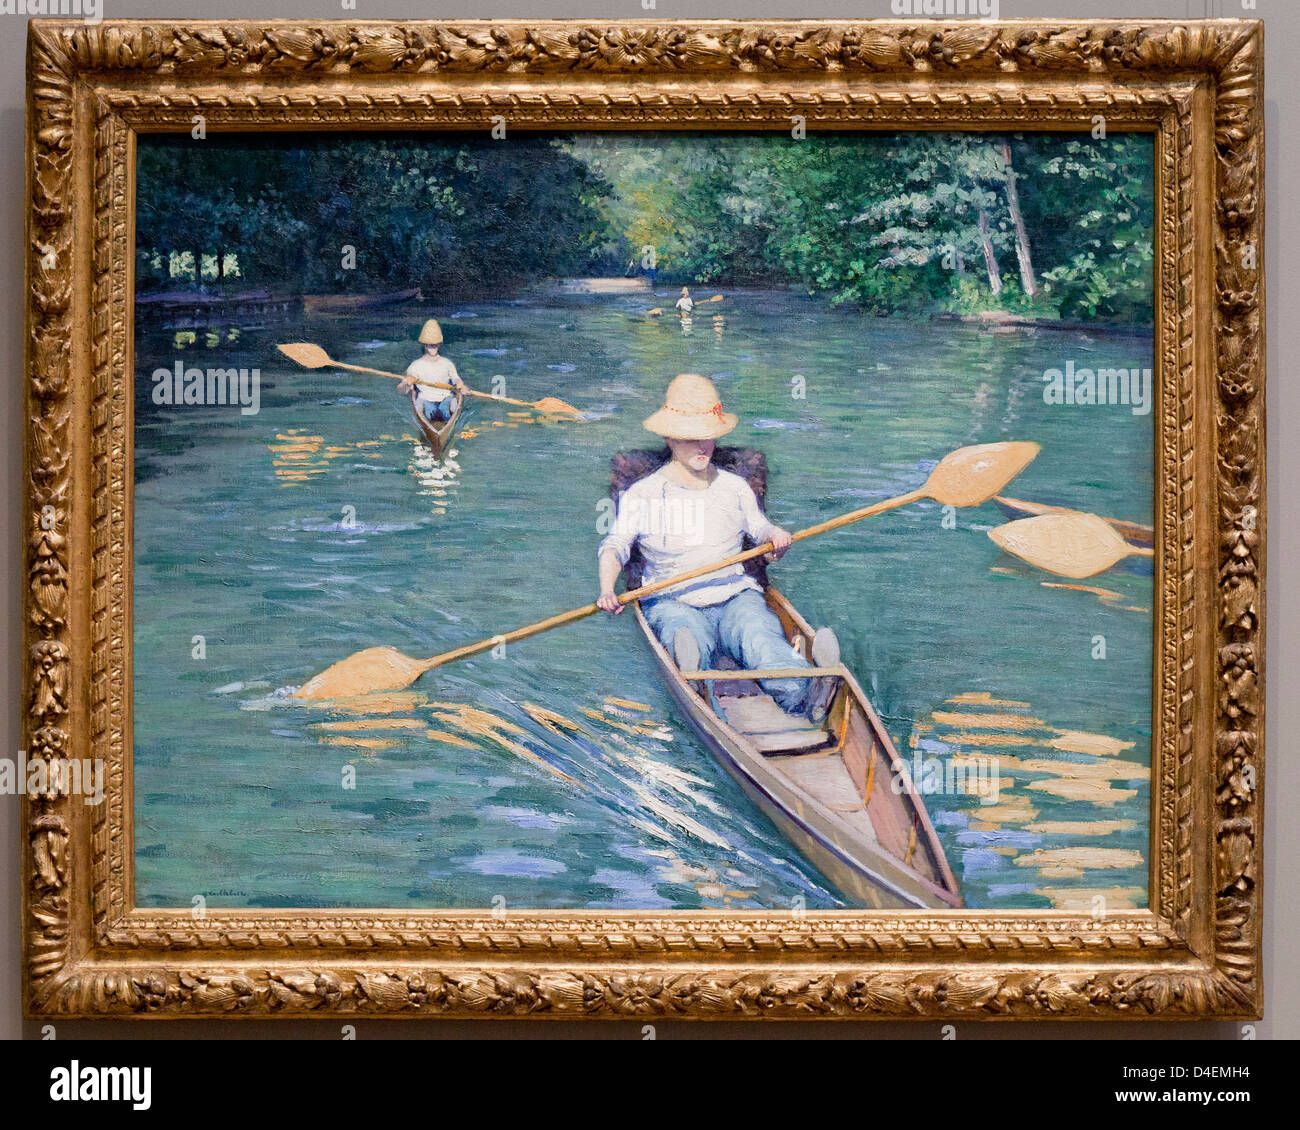 Skiffs by Gustave Caillebotte, 1877 - Stock Image